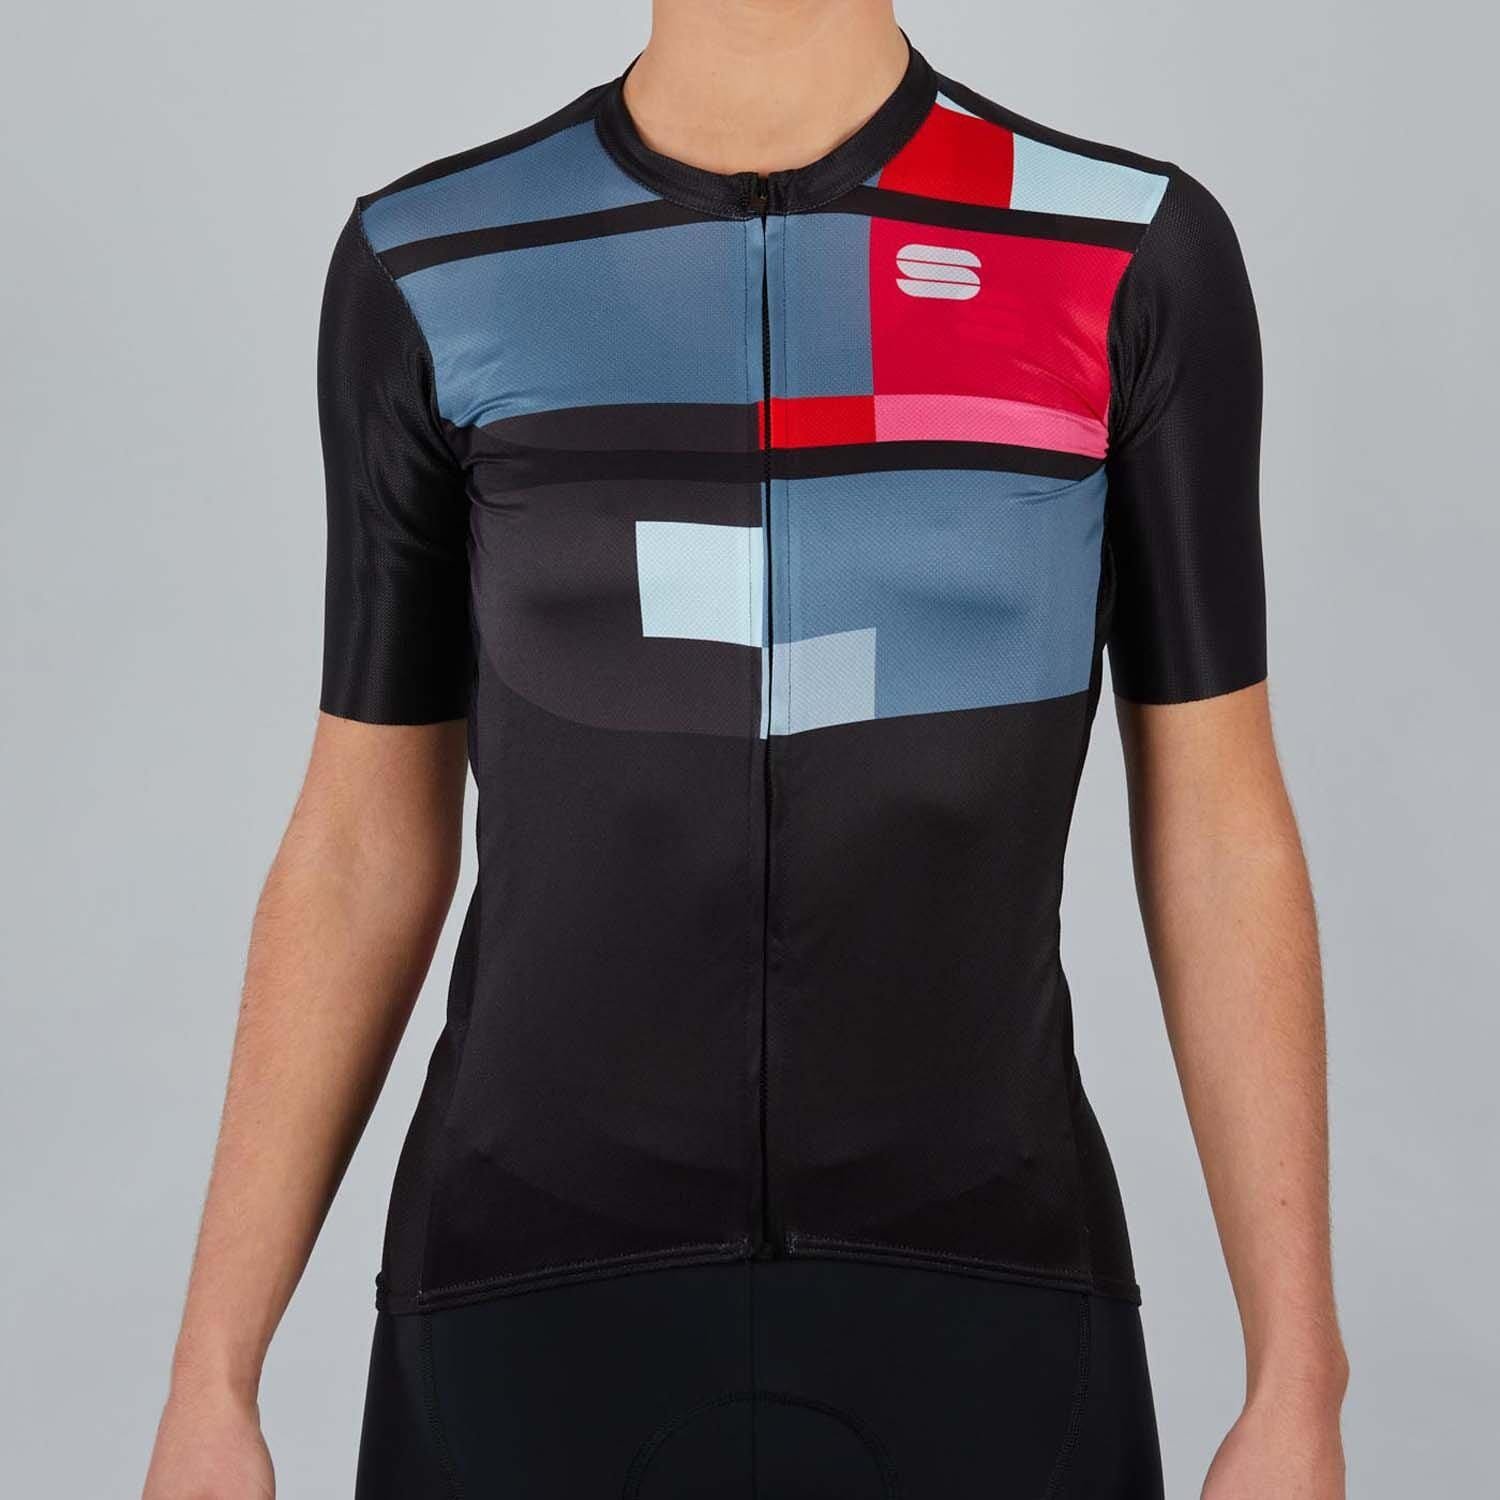 Sportful-Sportful Idea Women's Jersey-Black-XS-SF210820021-saddleback-elite-performance-cycling